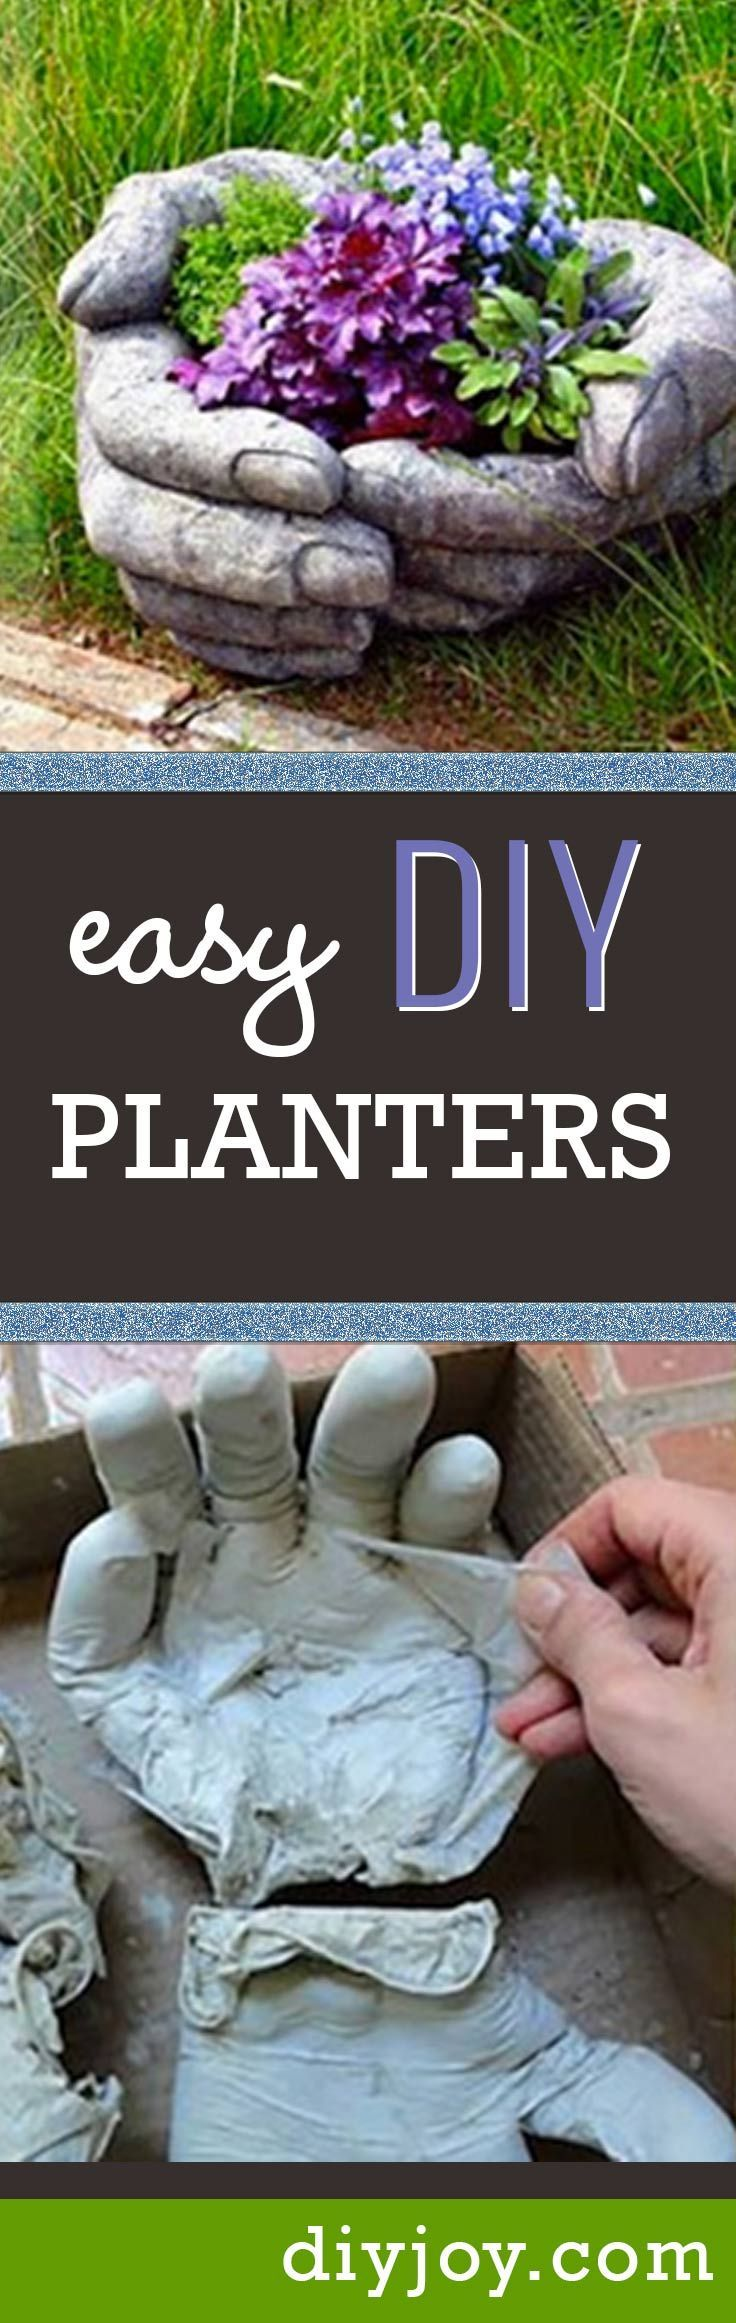 Easy diy planters for cool do it yourself gardening idea concrete easy diy planters for cool do it yourself gardening idea concrete pots in hand shade are super creative project pinterest concrete solutioingenieria Choice Image